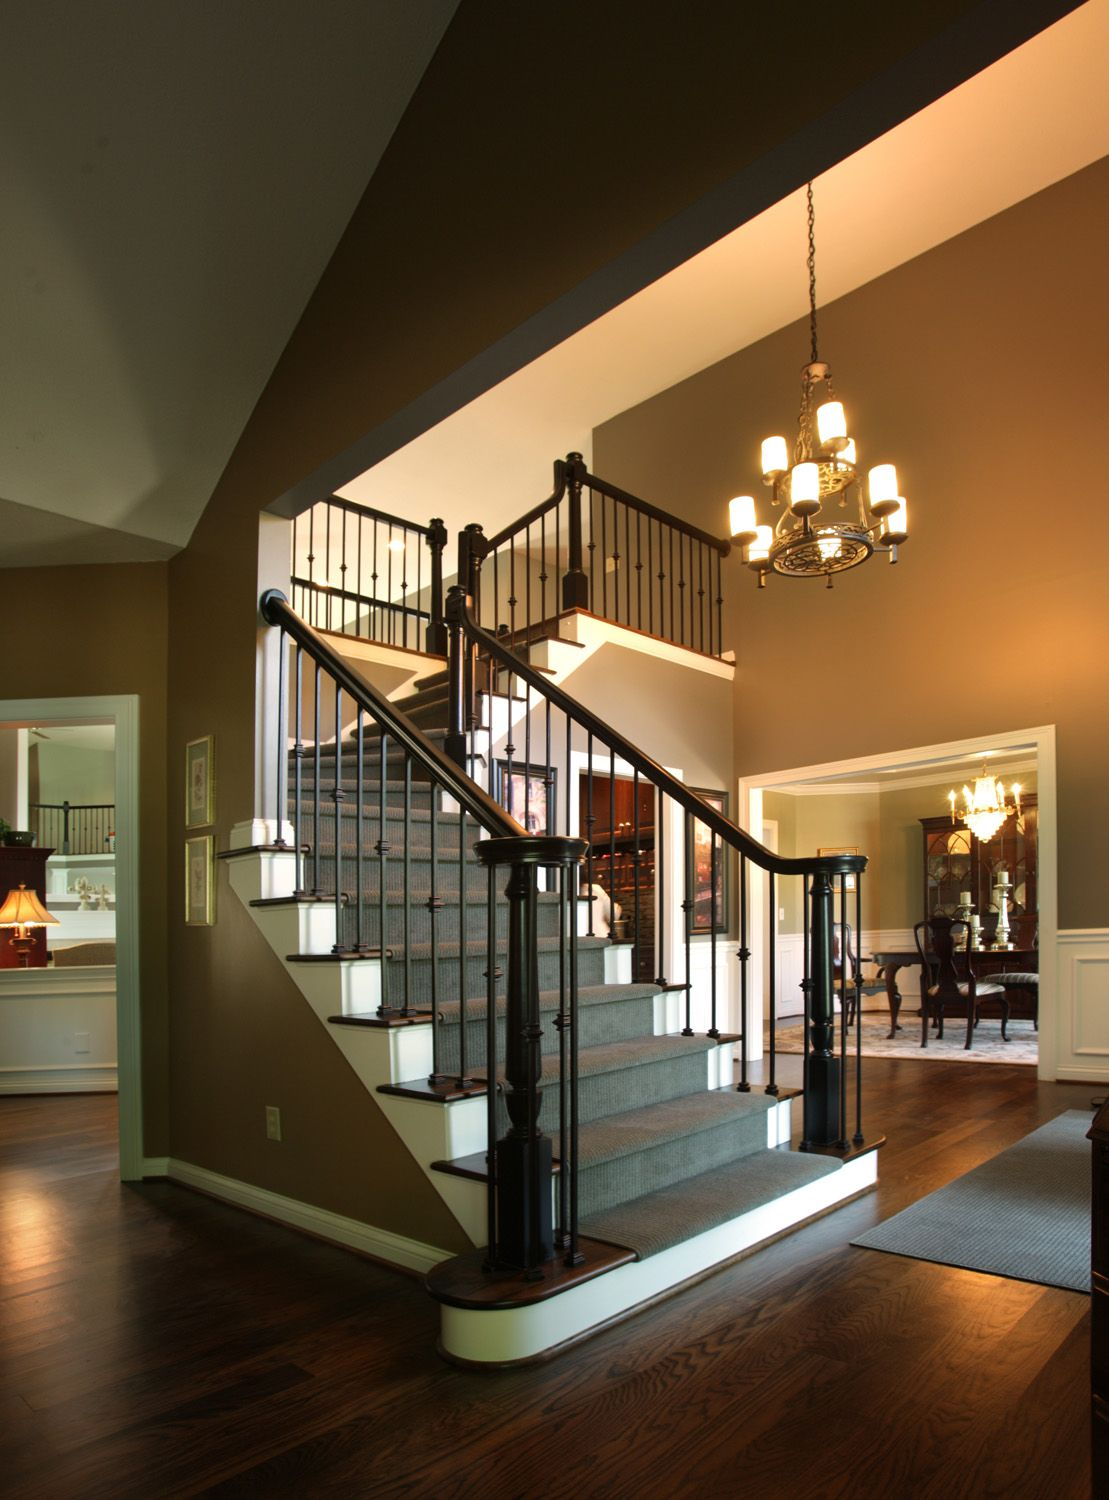 A Great Way To Update An Outdated Staircase In A Home Is To Change Out The